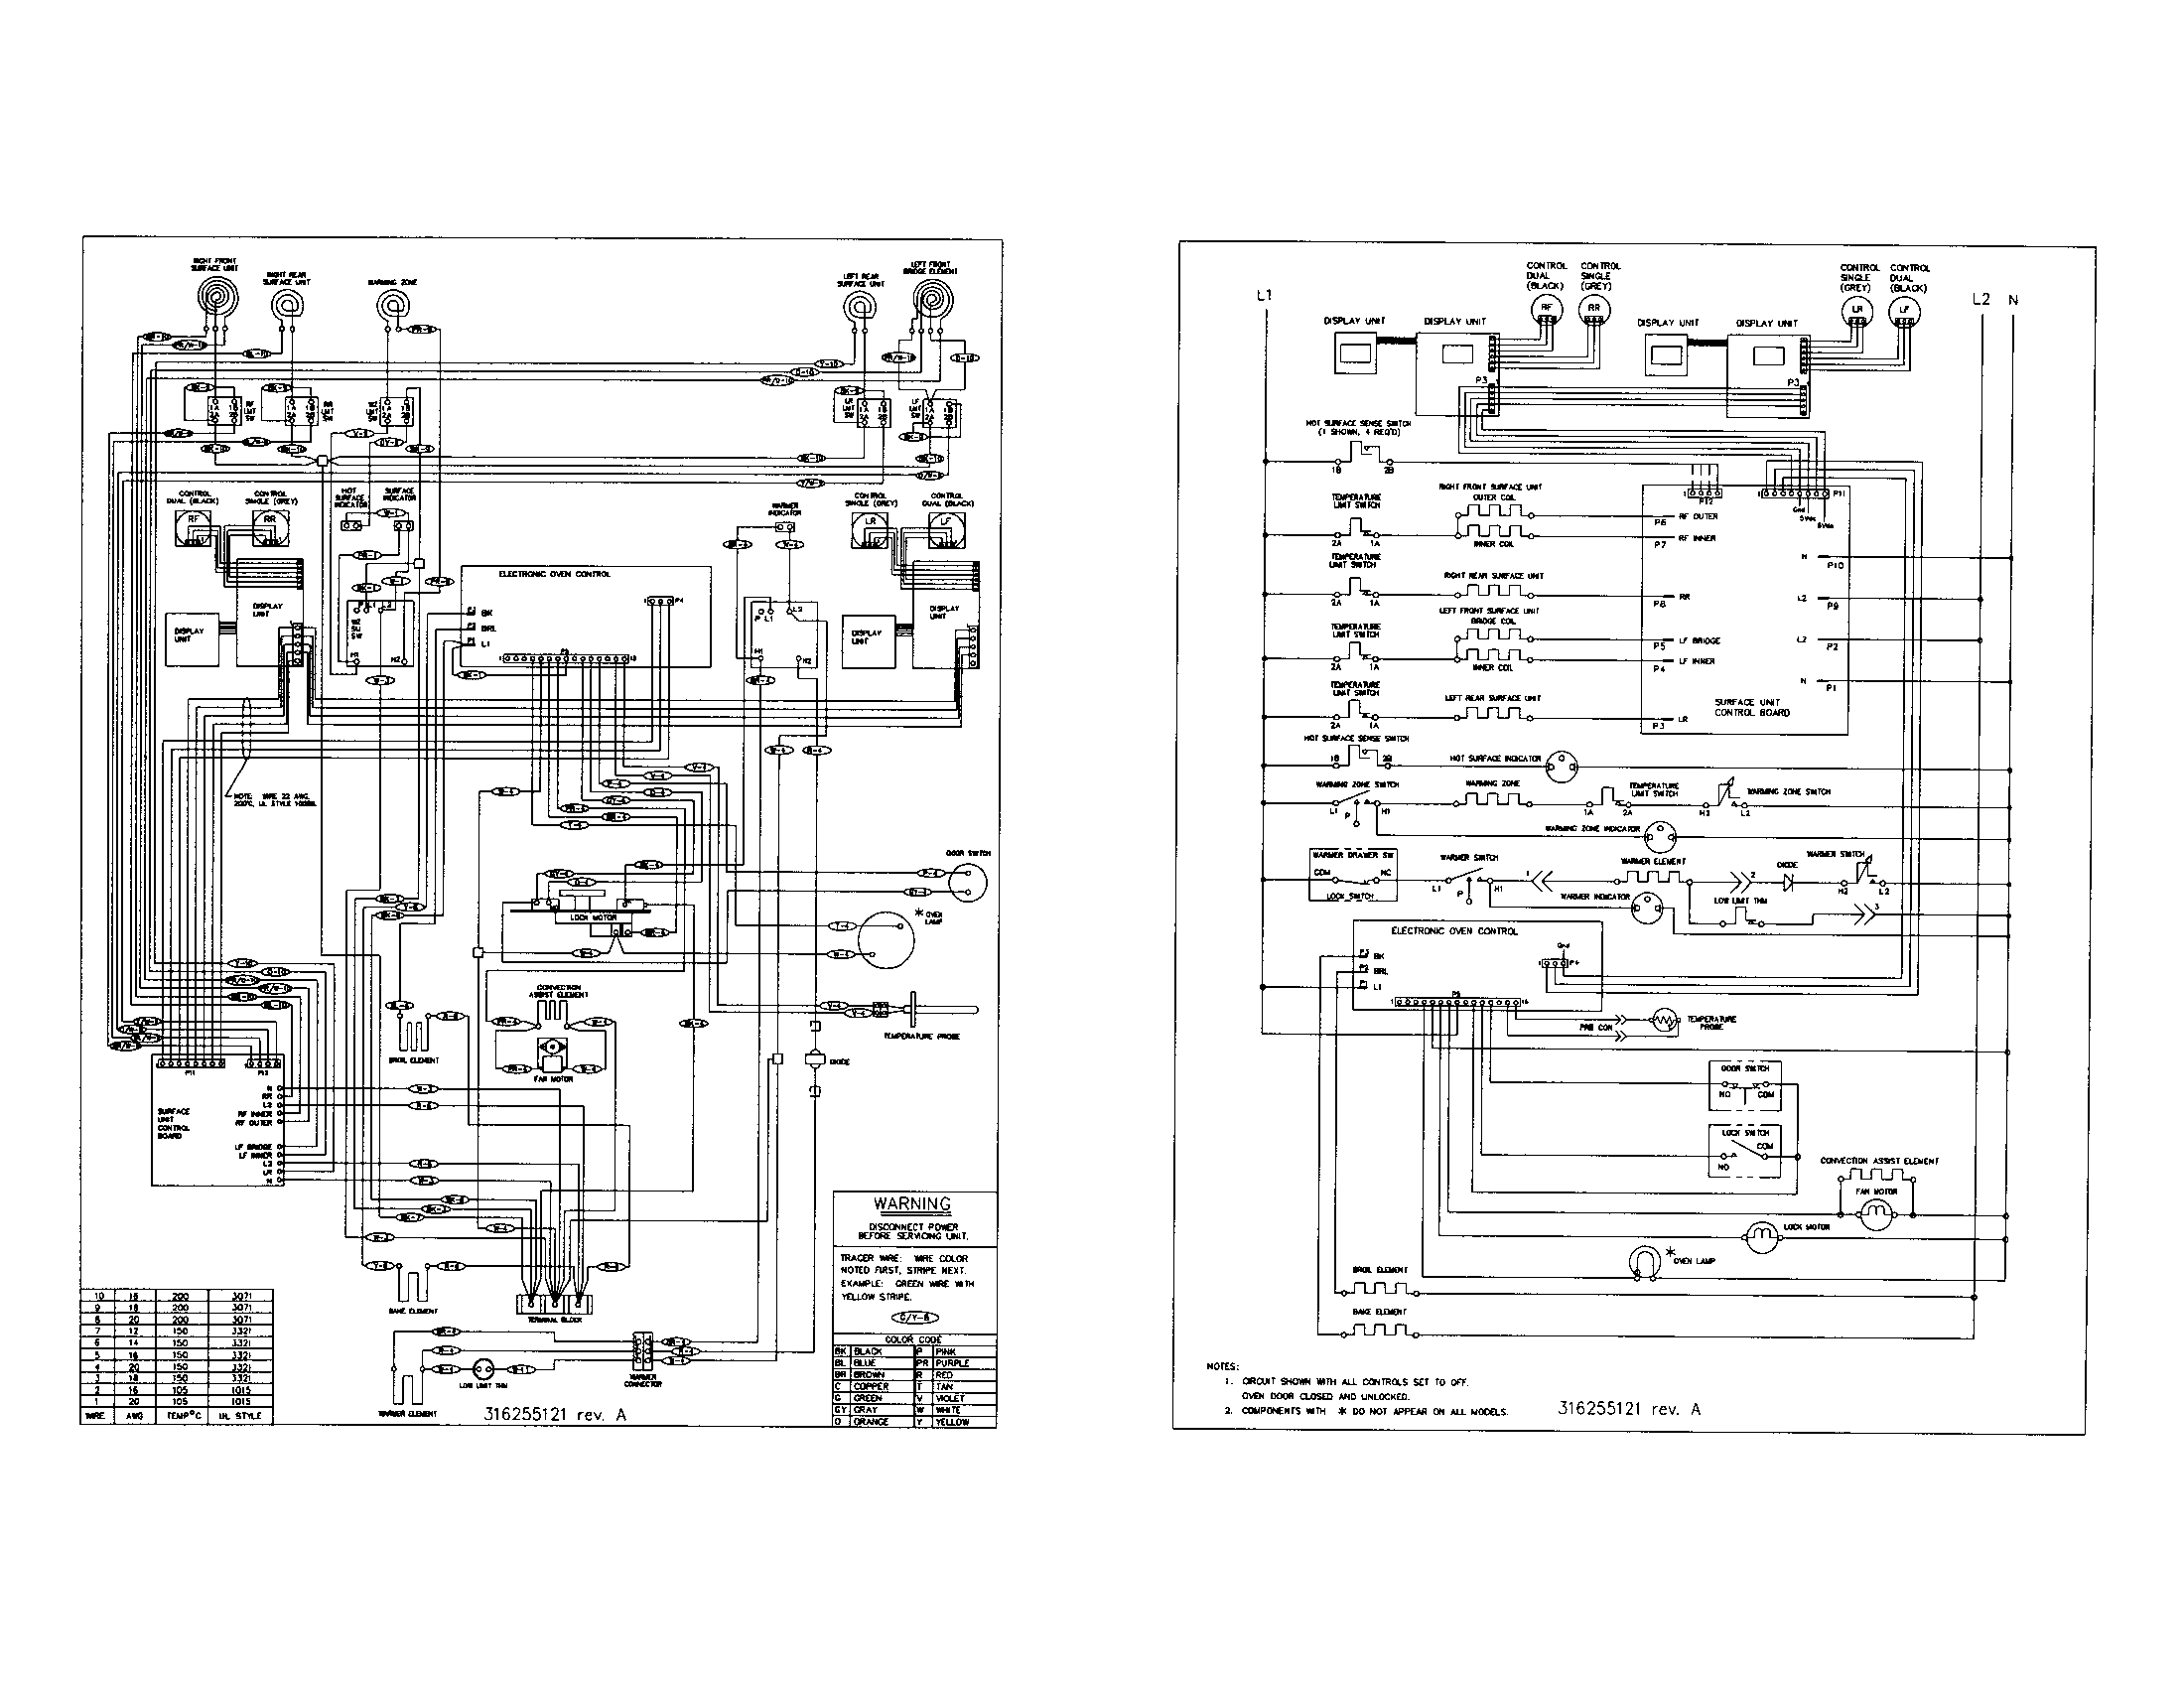 Fralin Blender Wiring Diagram also Whirlpool Oven Control Panel Wiring Diagram together with Wiring Diagram For Kitchenaid Oven furthermore Kitchenaid Lp Conversion Instructions Wiring Diagrams as well General Electric Washer Problems. on kitchenaid replacement parts for stove